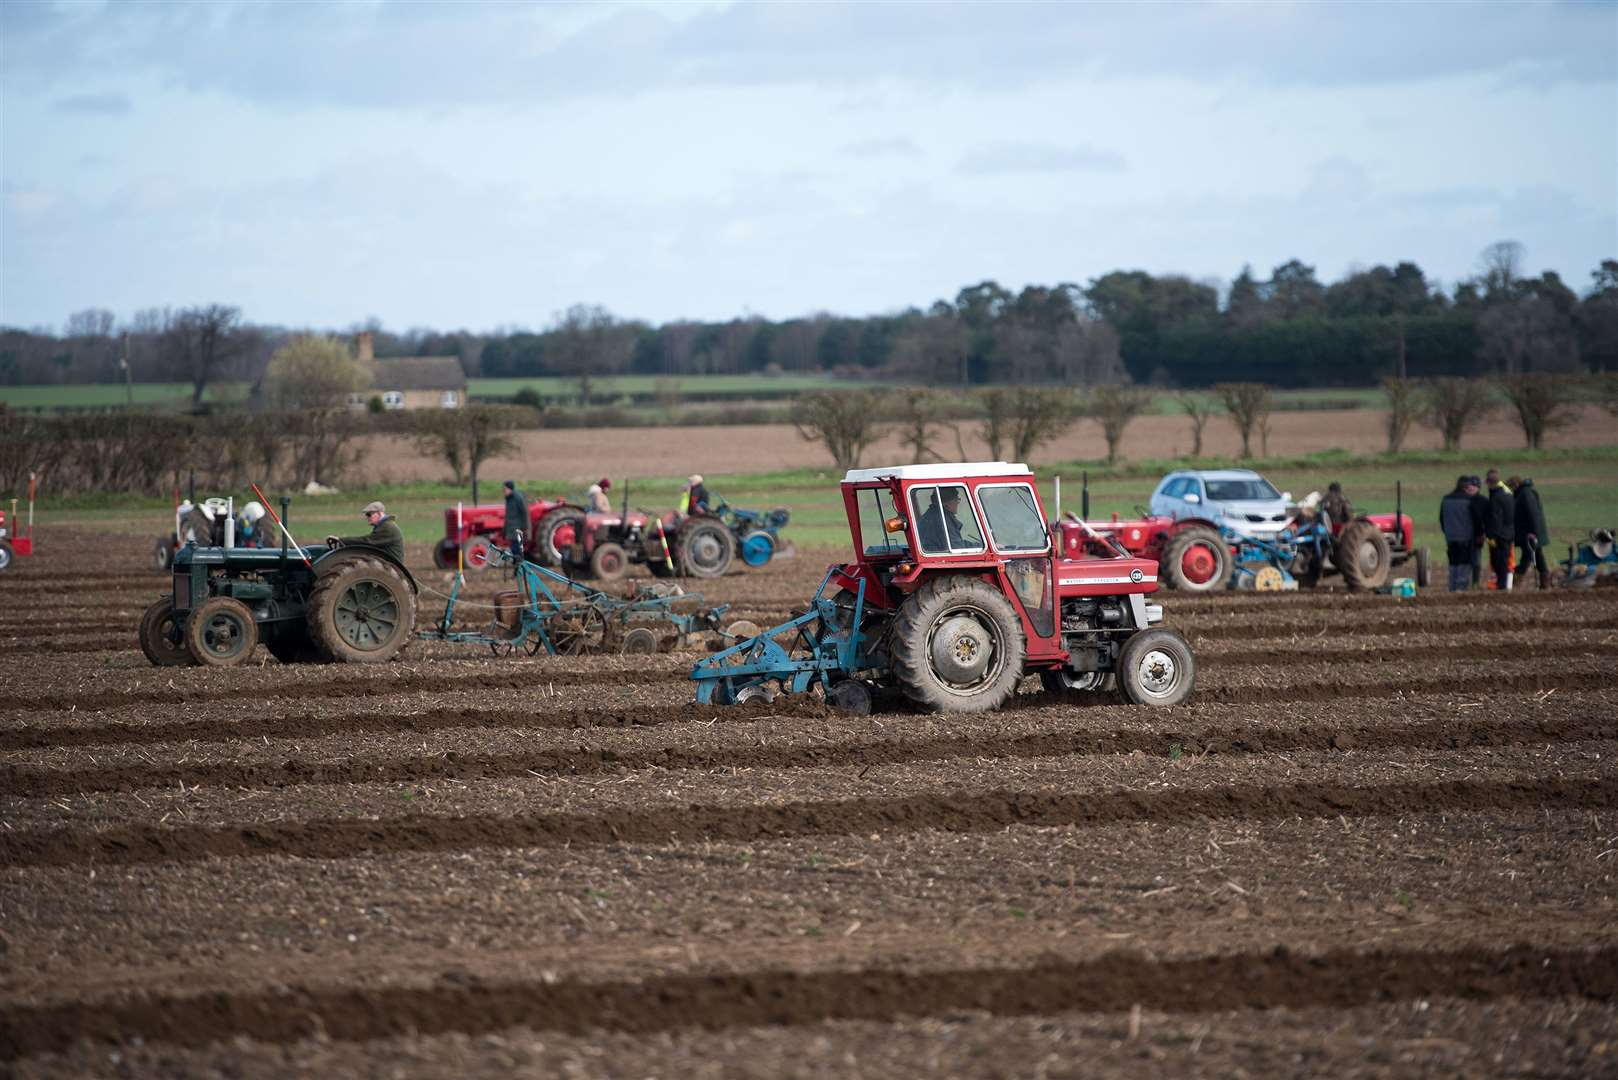 INGHAM: Plough Match taking place with winners judged on quality of ploughing .Annual plough match at Neville House Farm in Ingham. 9 sectors of field ploughed with judgements made based on quality of ploughing. Organised by Society of Ploughmen. Picture Mark Westley. (31163365)